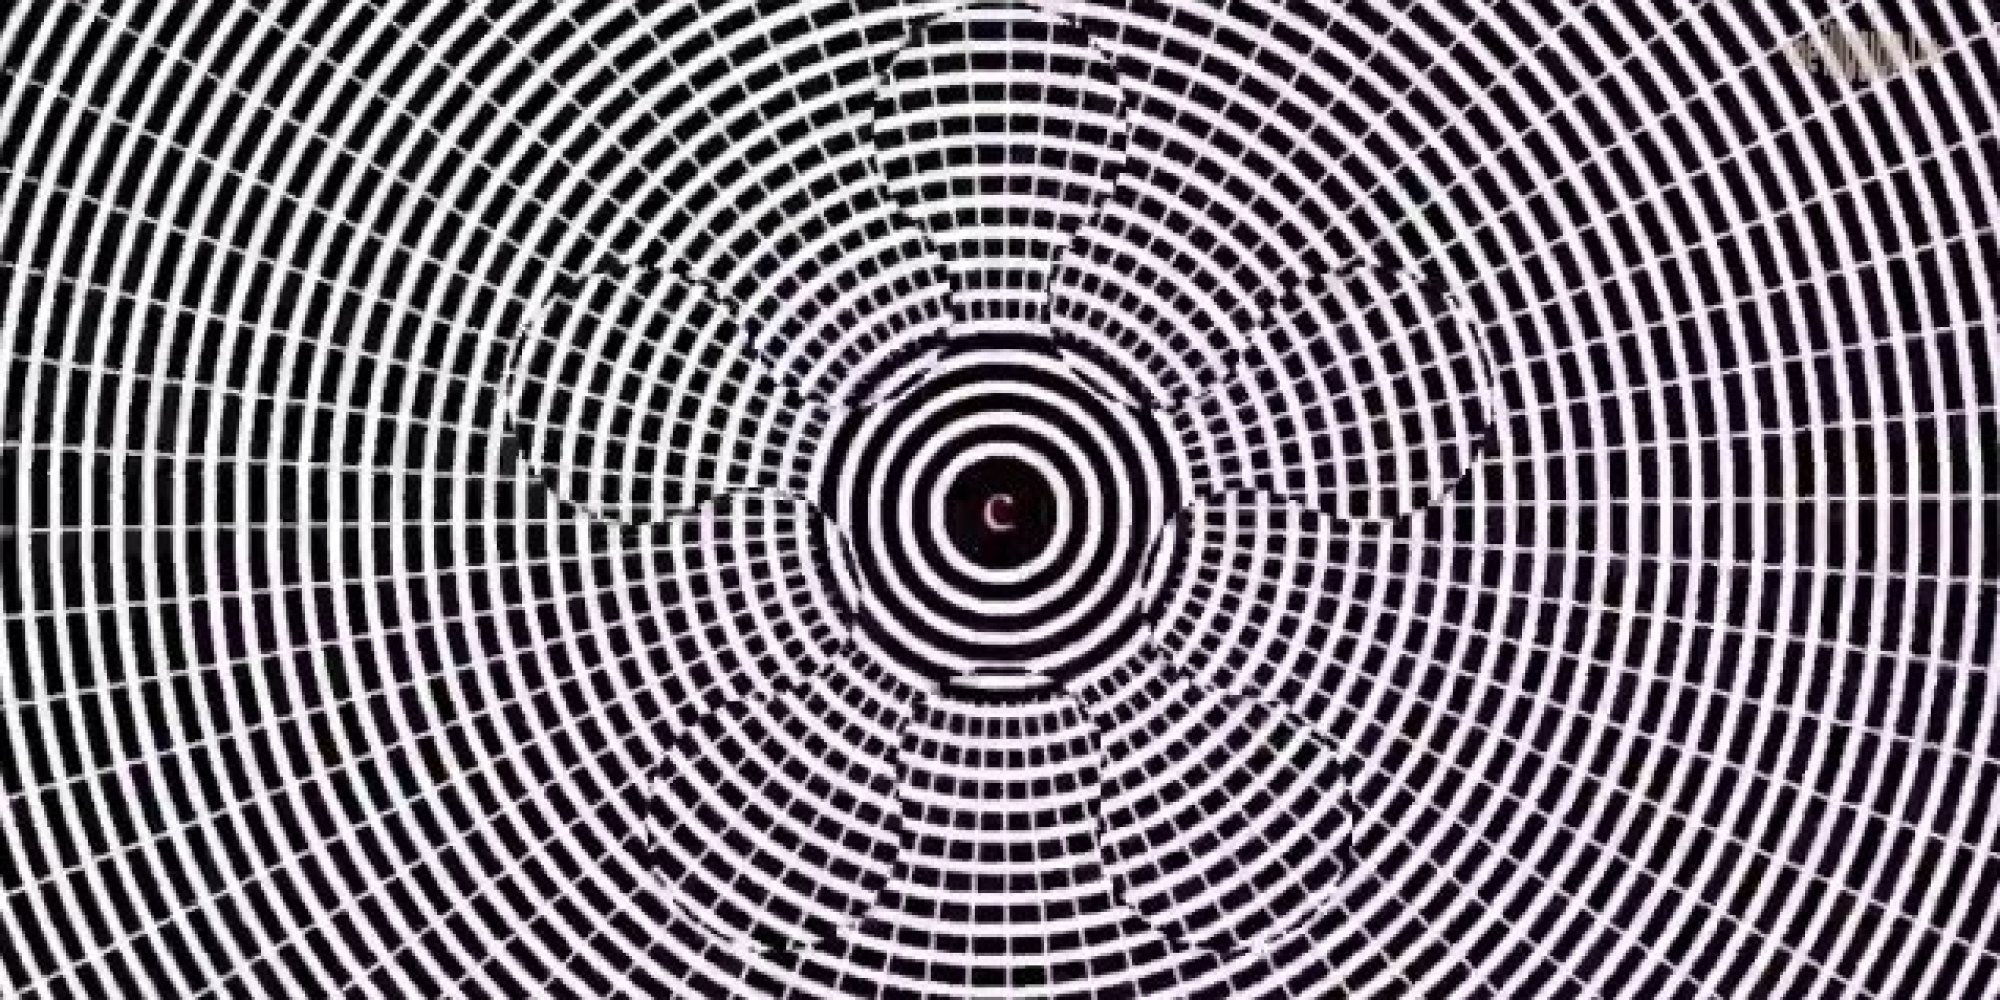 This Optical Illusion Video May Make You Hallucinate (Yes ...